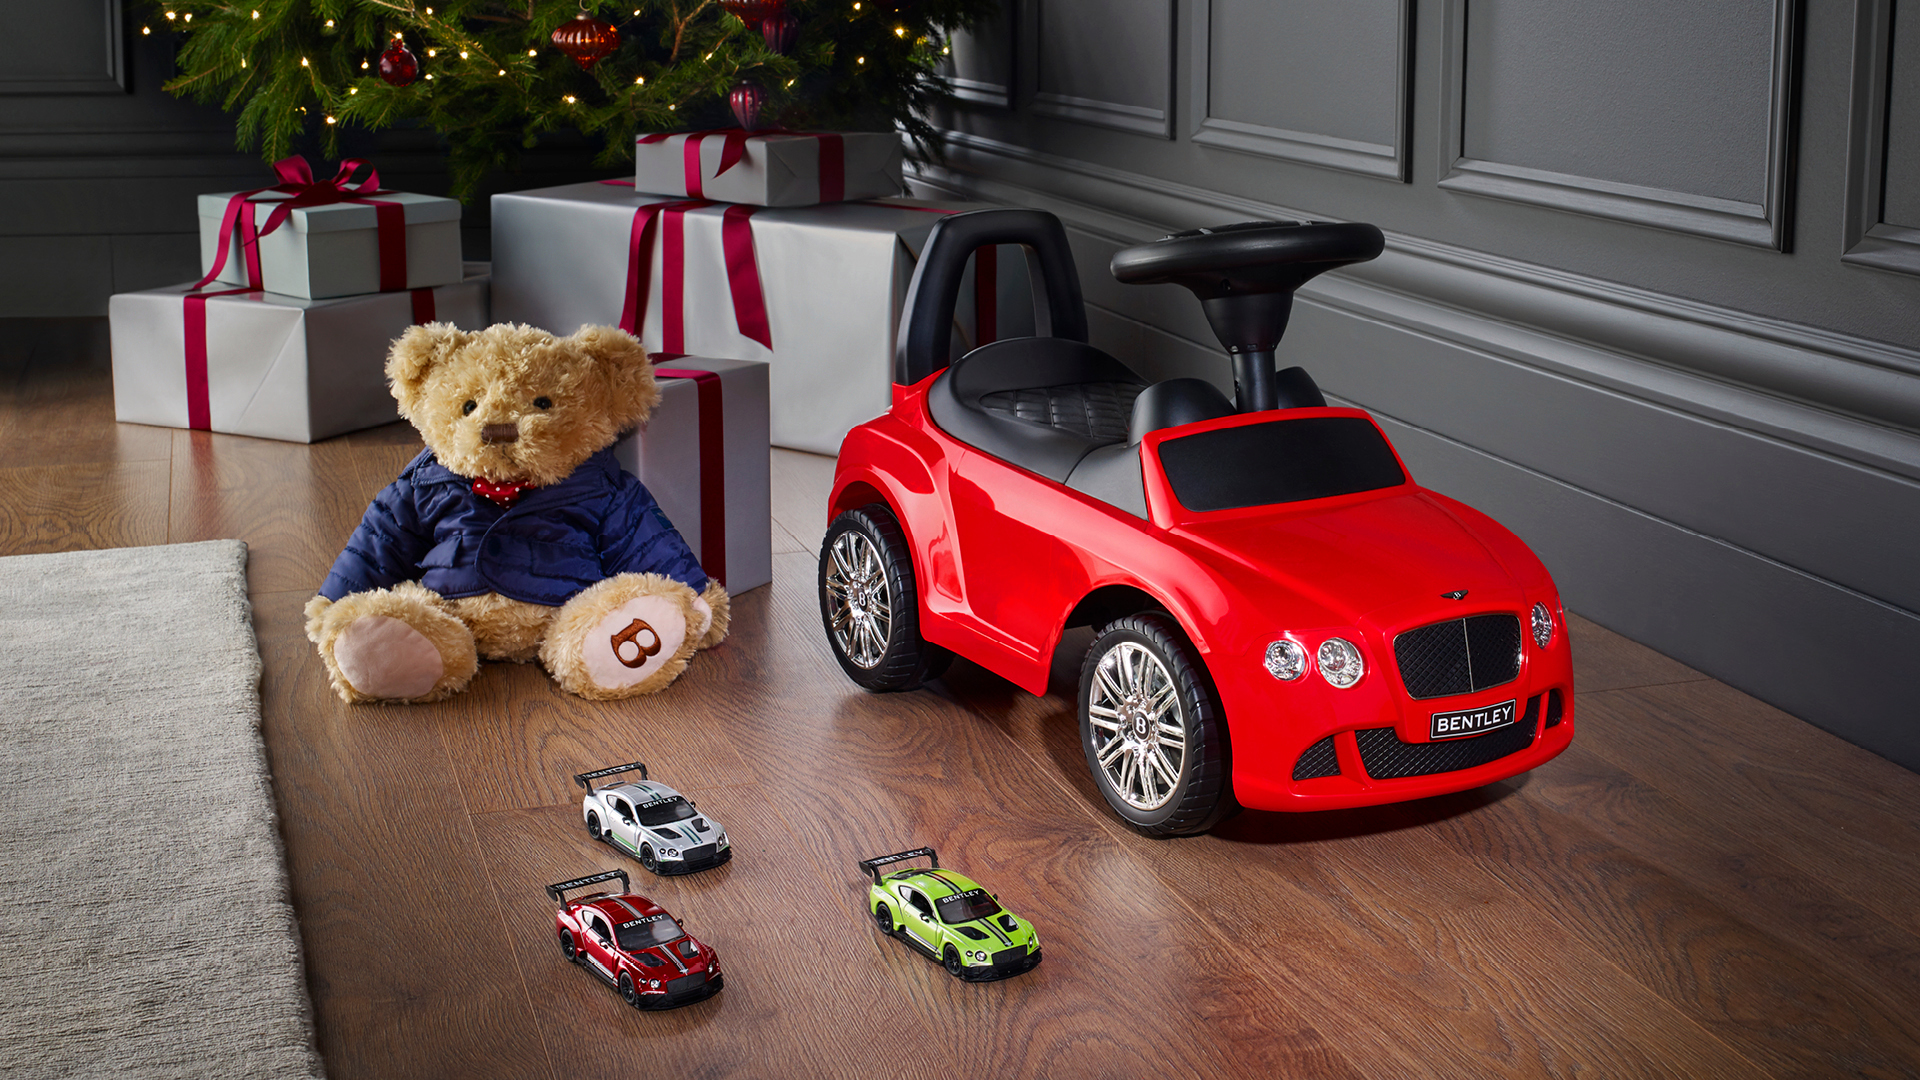 For Bentley boys (and girls) aged two to six. Inspired by the Continental GT. Even plays music from the stereo. Class. Go to shop.bentleymotors.com